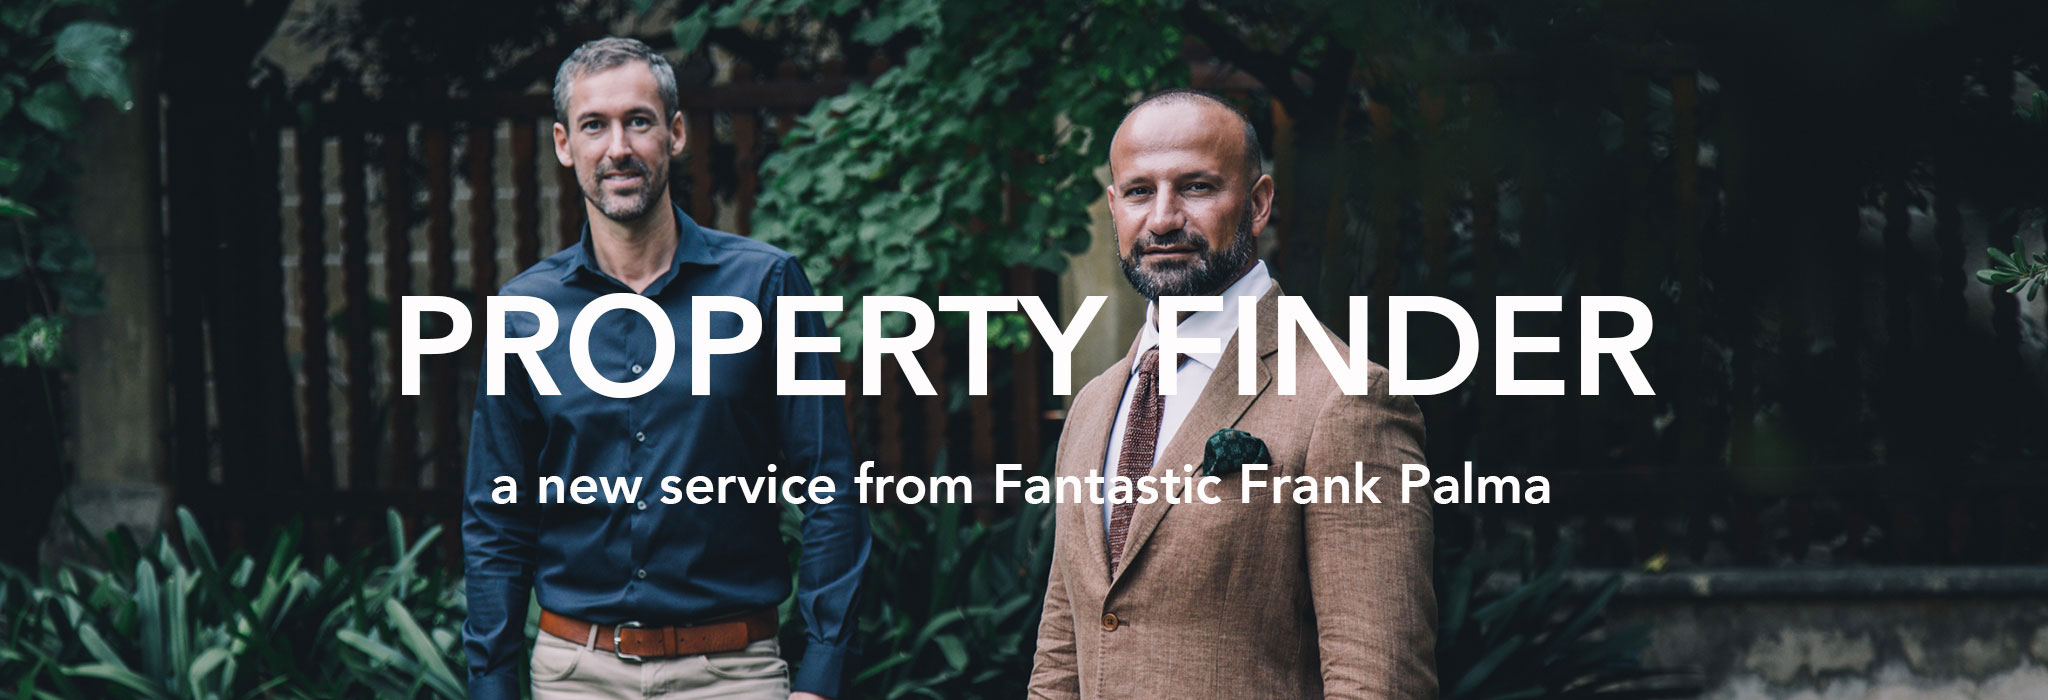 Fantastic Frank Palma - Personal property finder